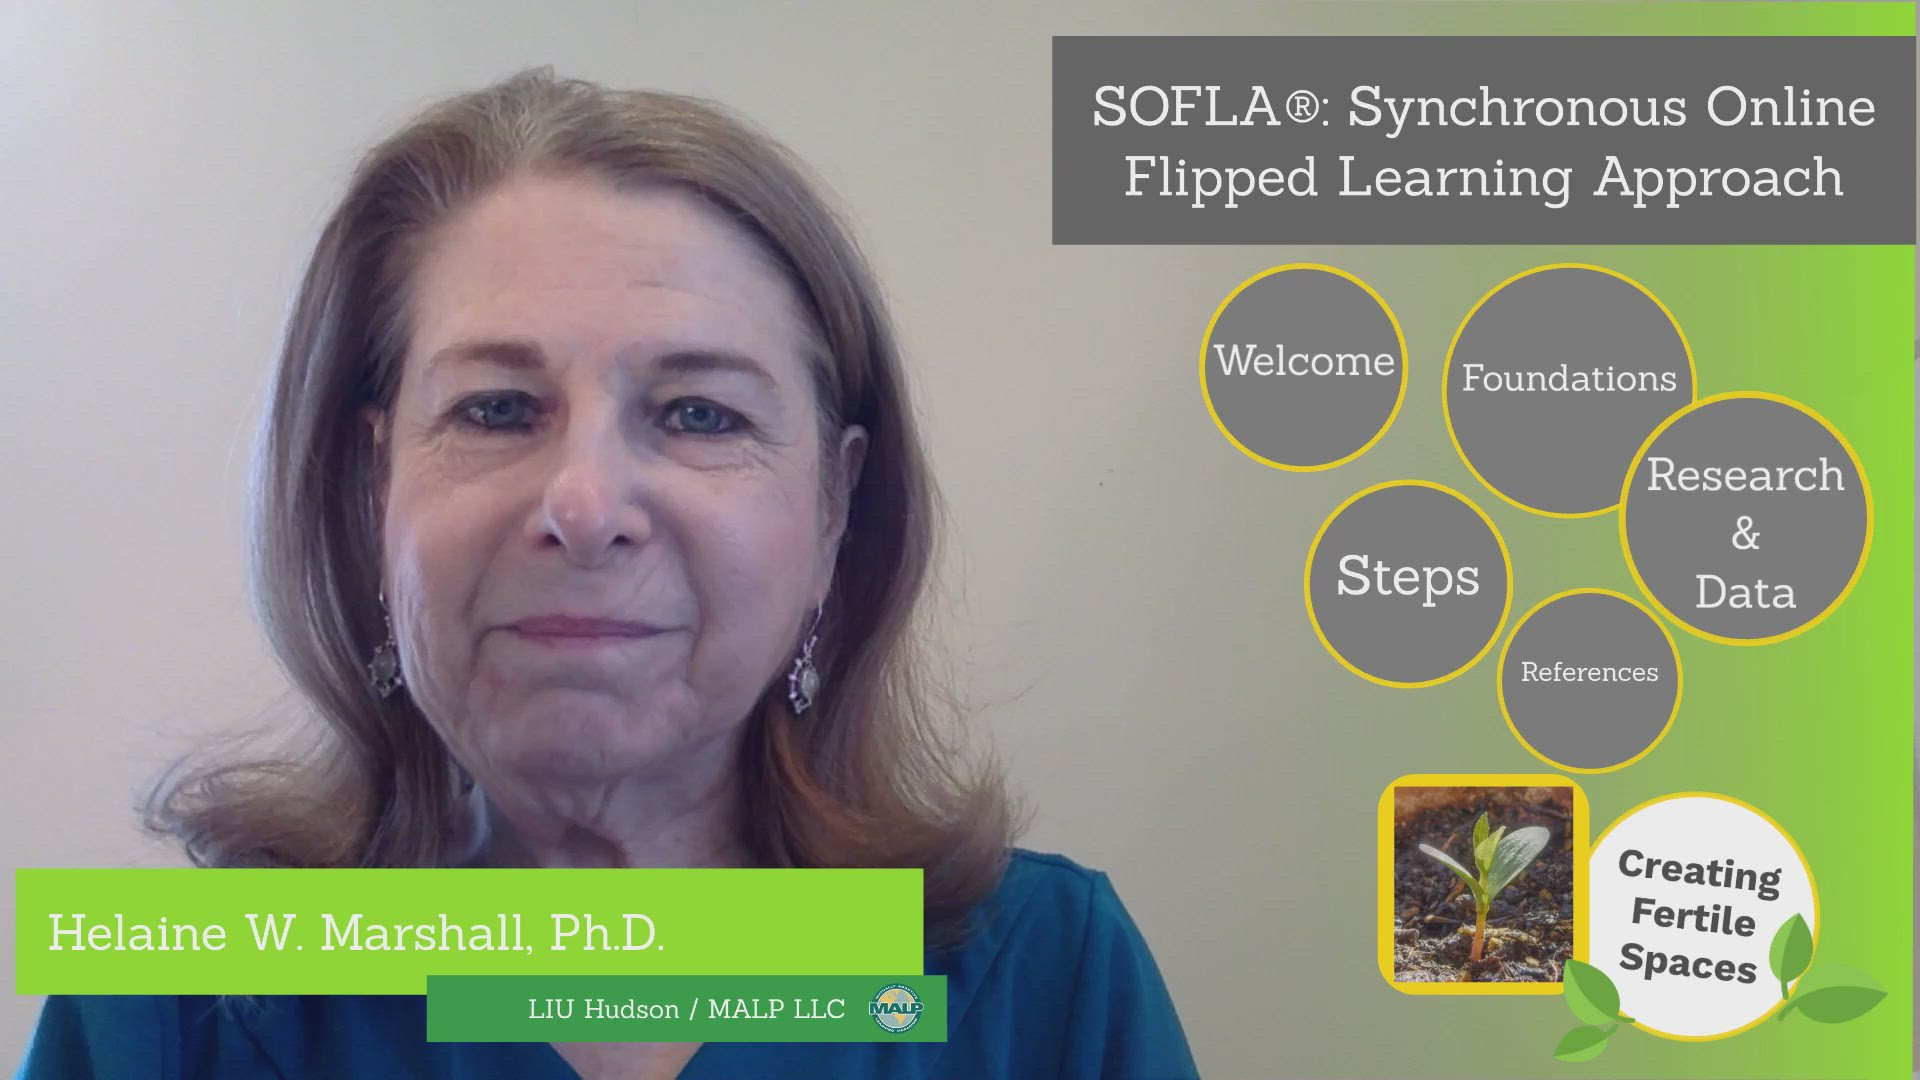 Helaine Marshall reviews the 8 steps to SOFLA (Synchronous Online Flipped Learning Approach).